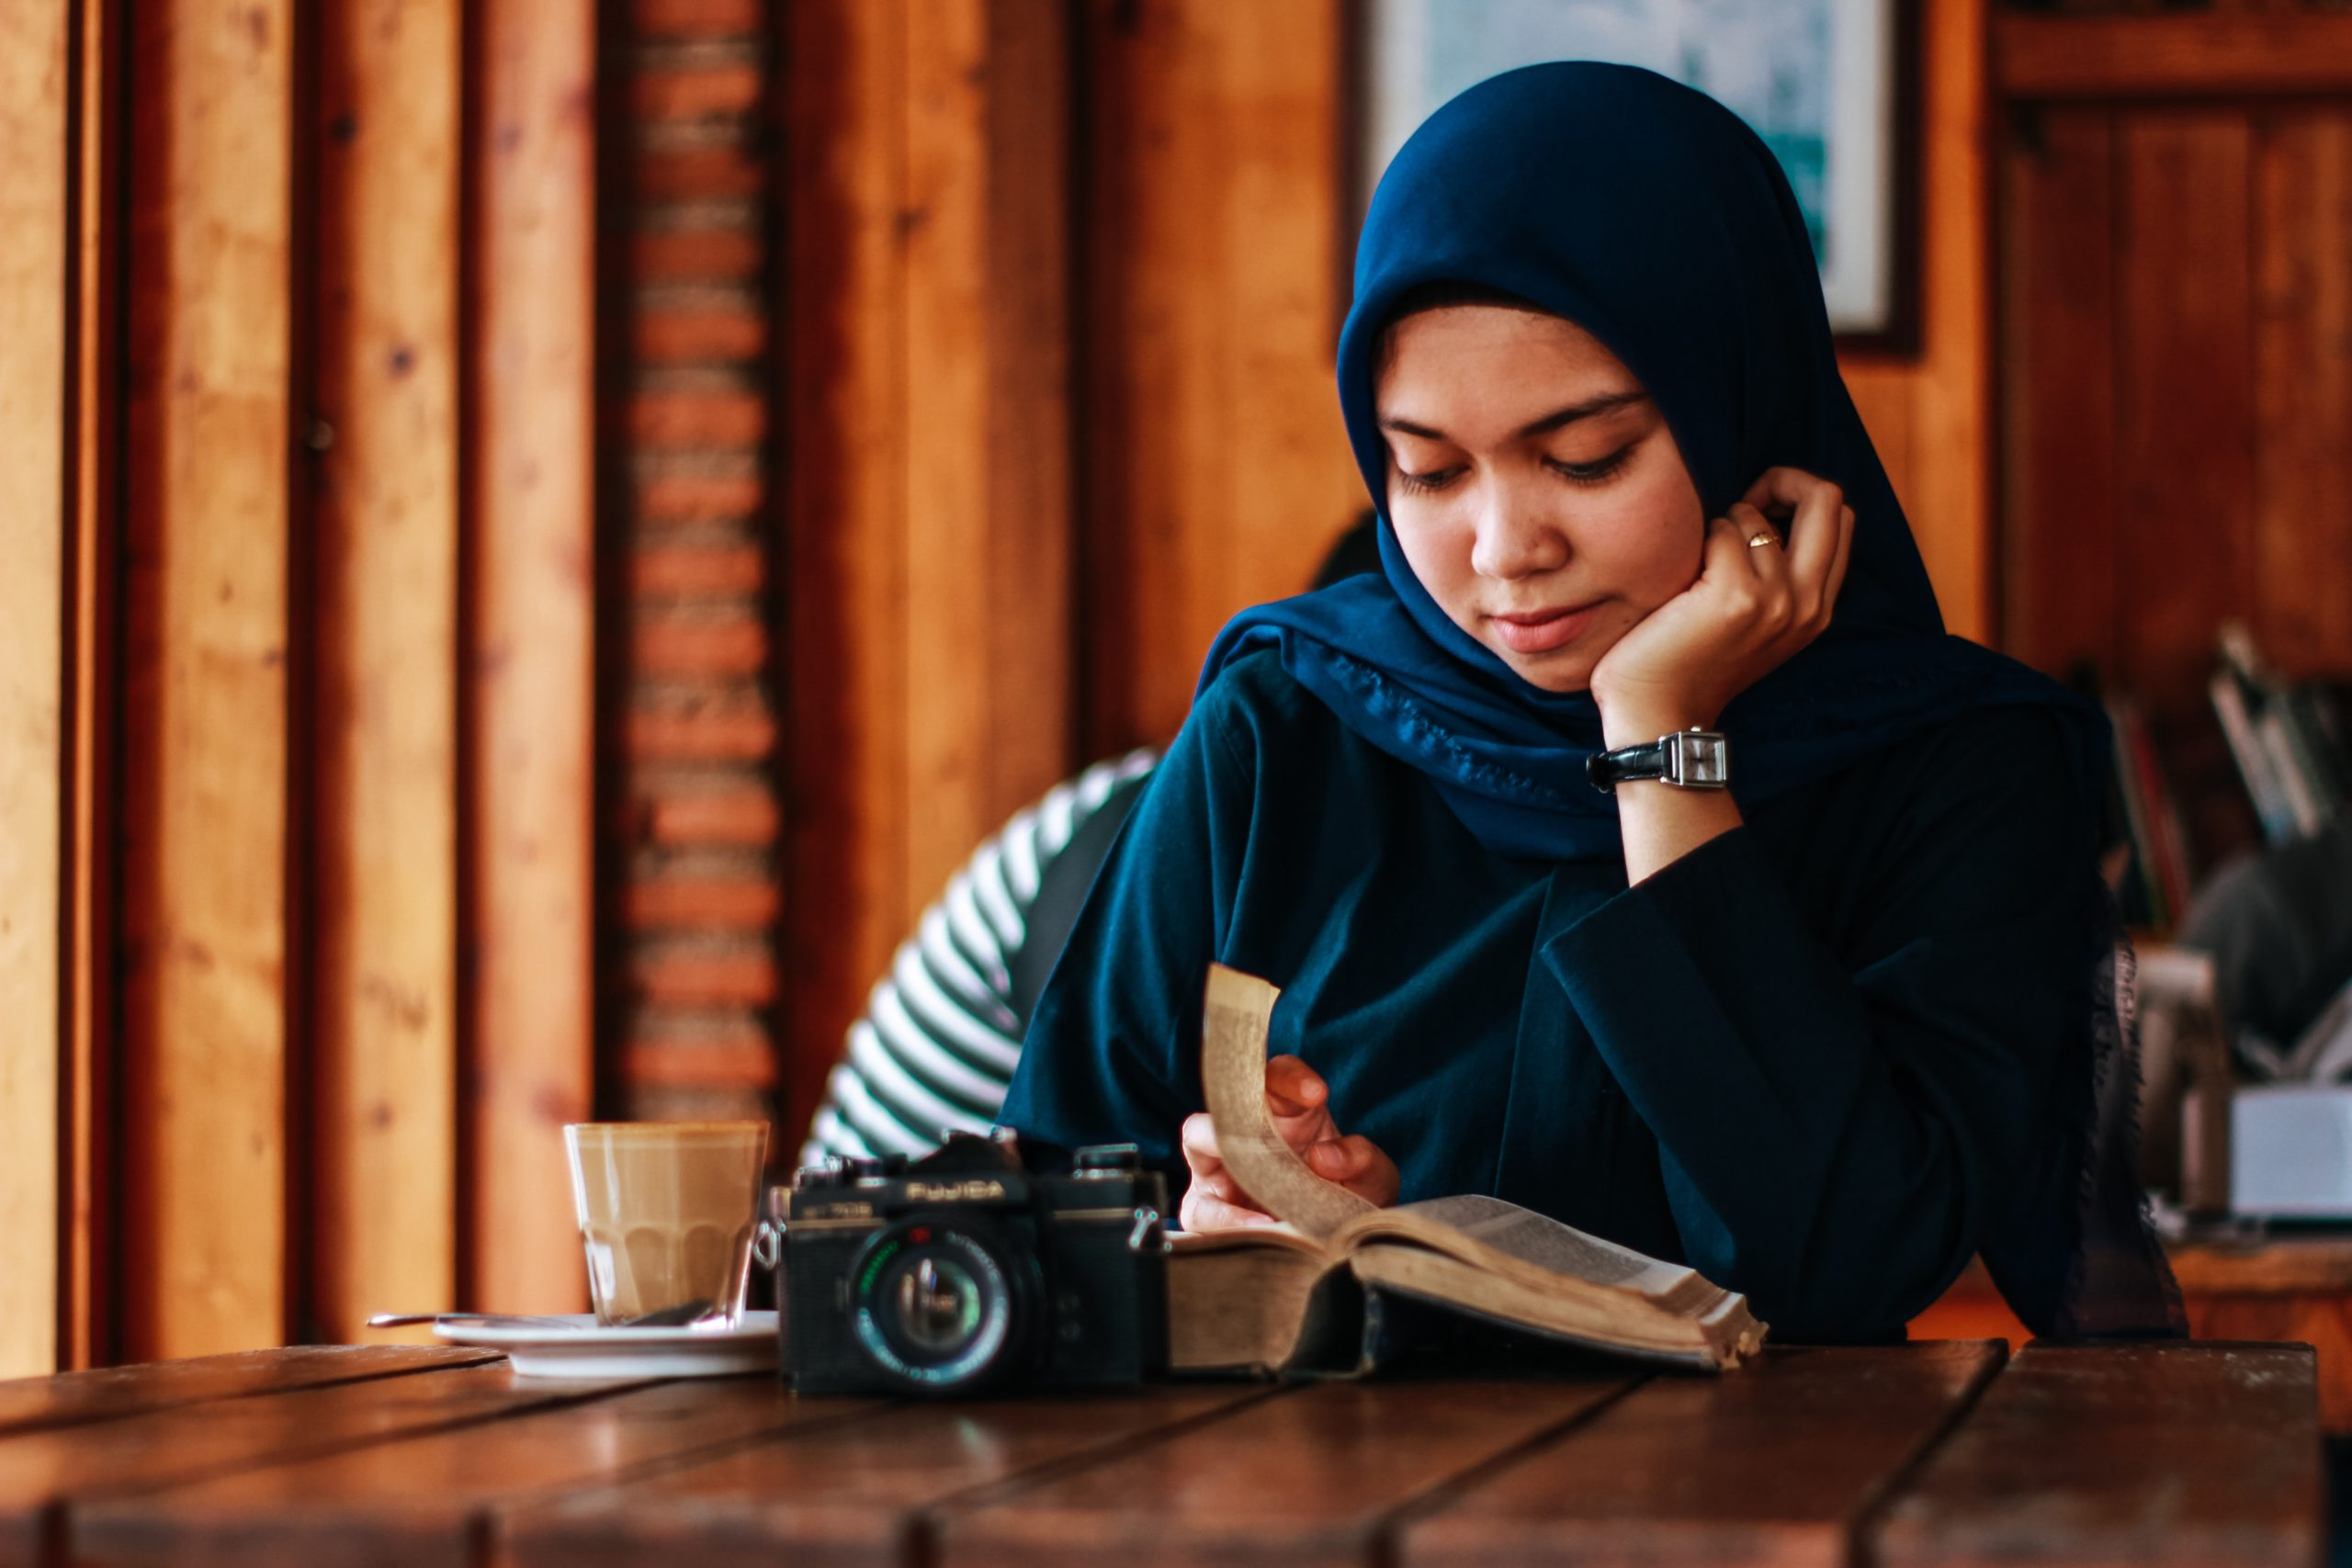 female in hijab reading a book in a cafe